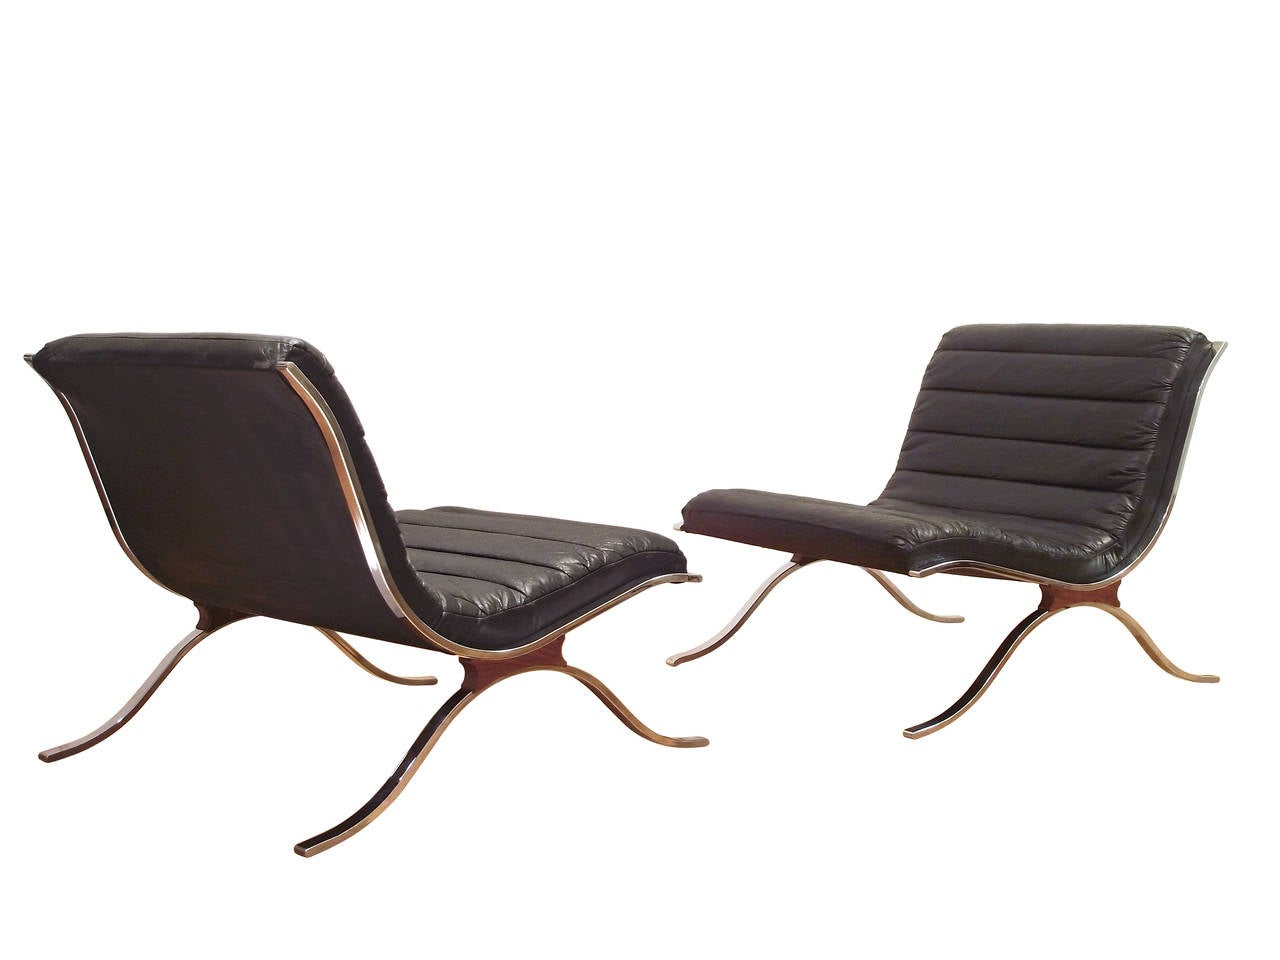 pair of channel tufted chairs in chrome after arne norell 2 channel tufted furniture